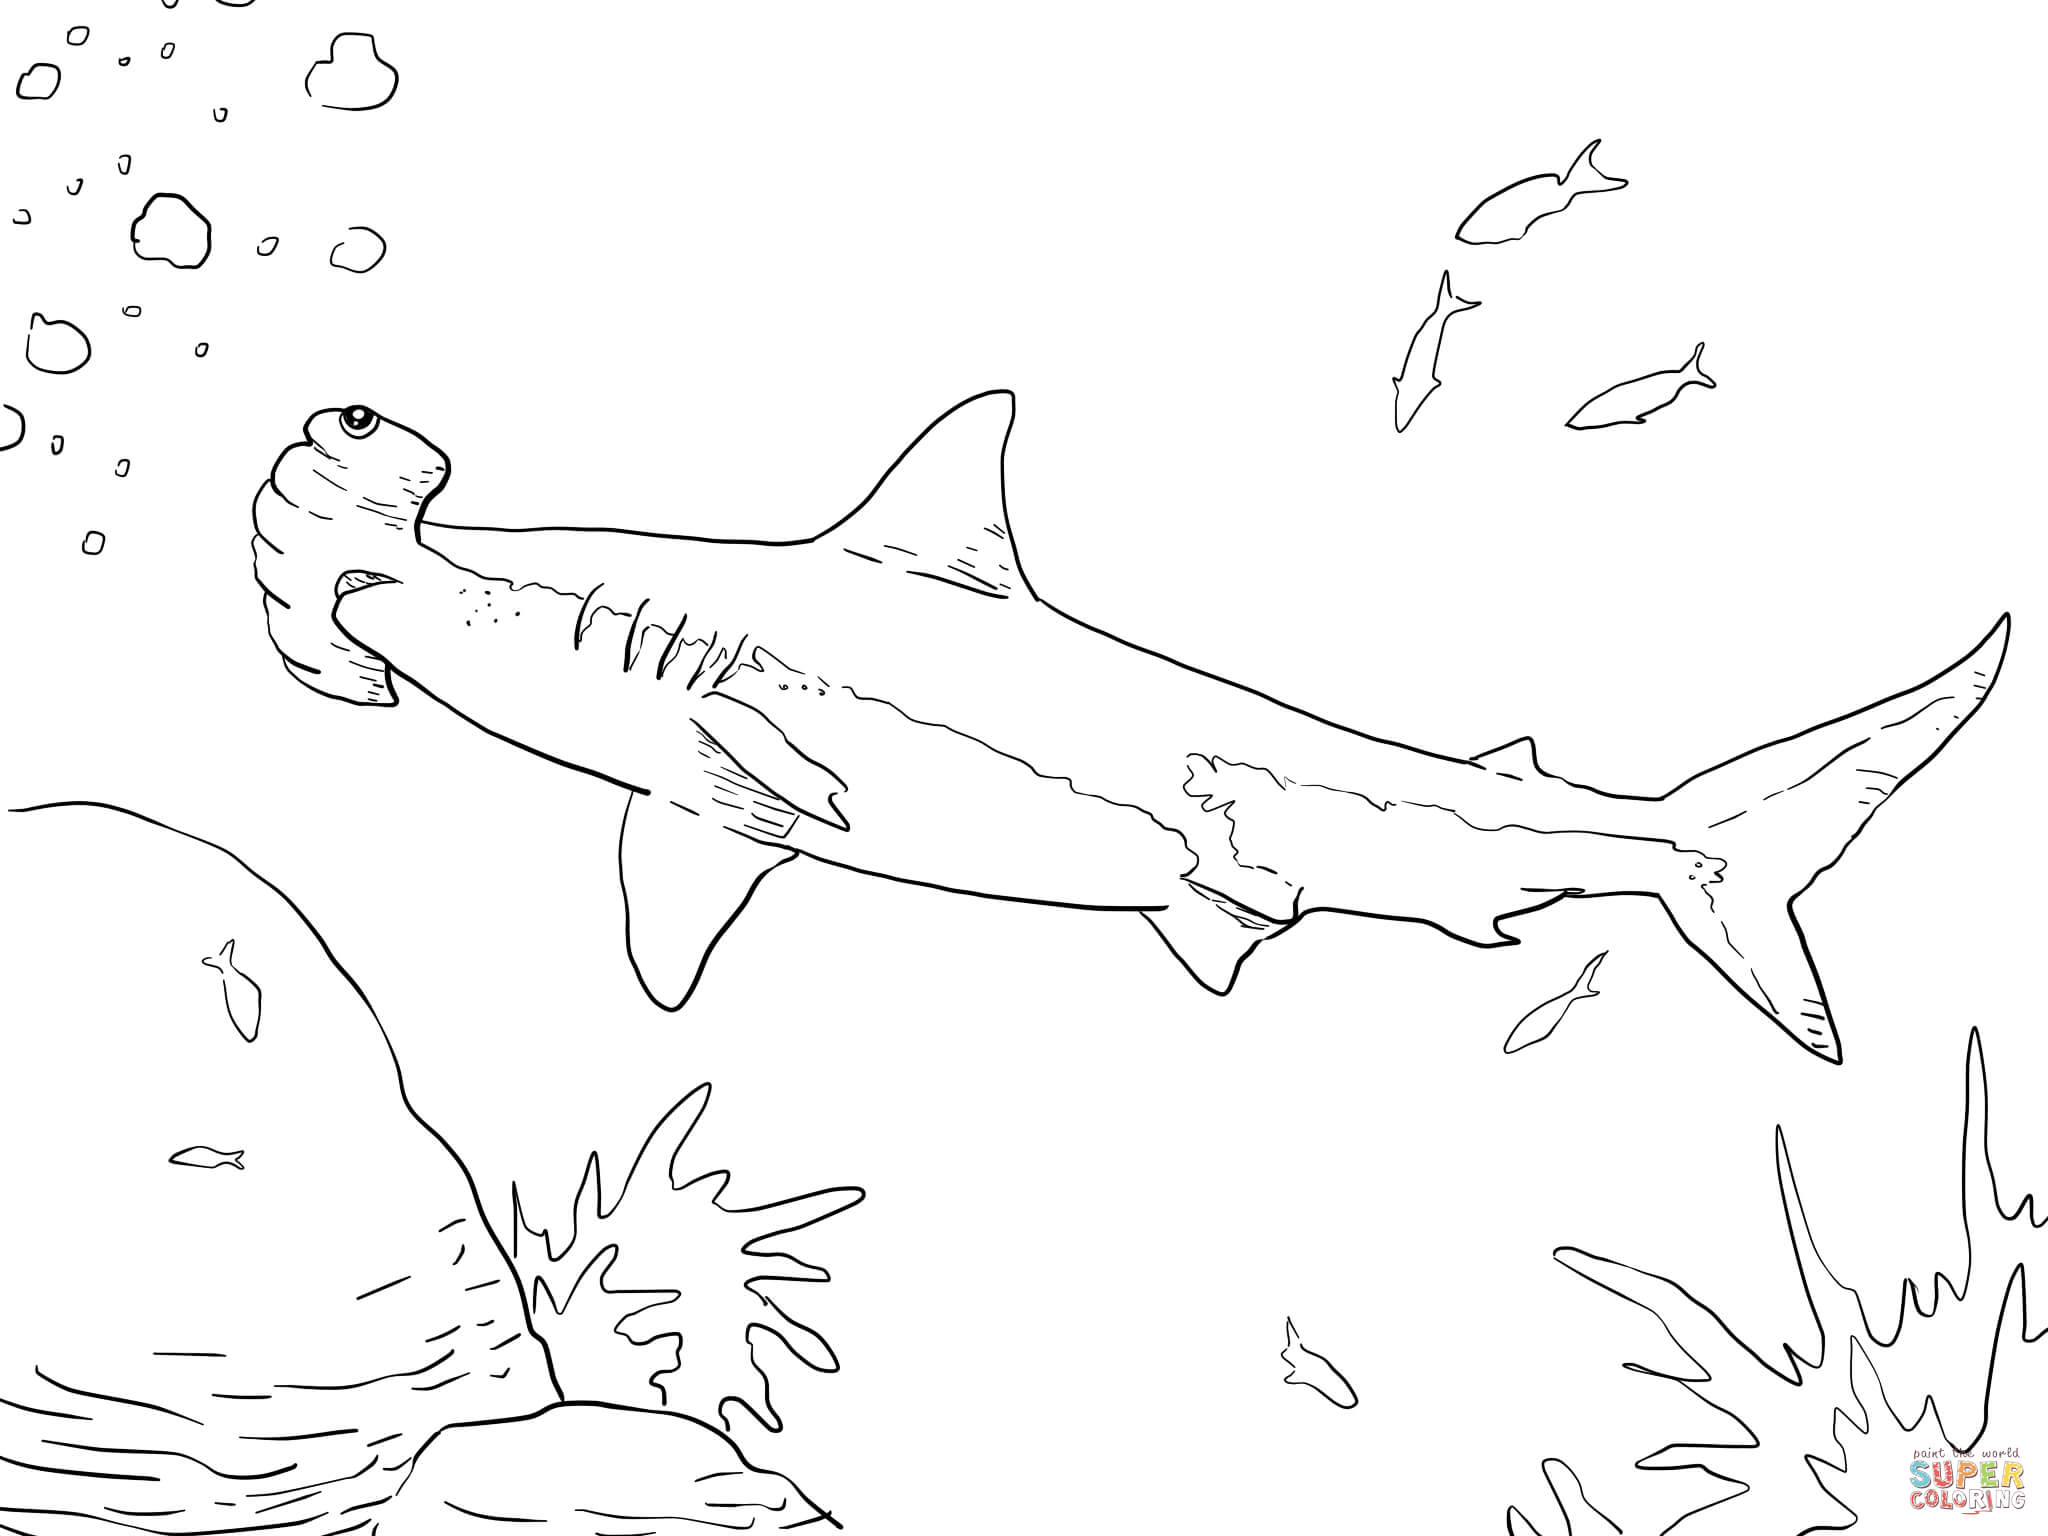 hammerhead shark pictures to color hammerhead shark coloring pages free coloring home shark pictures hammerhead to color